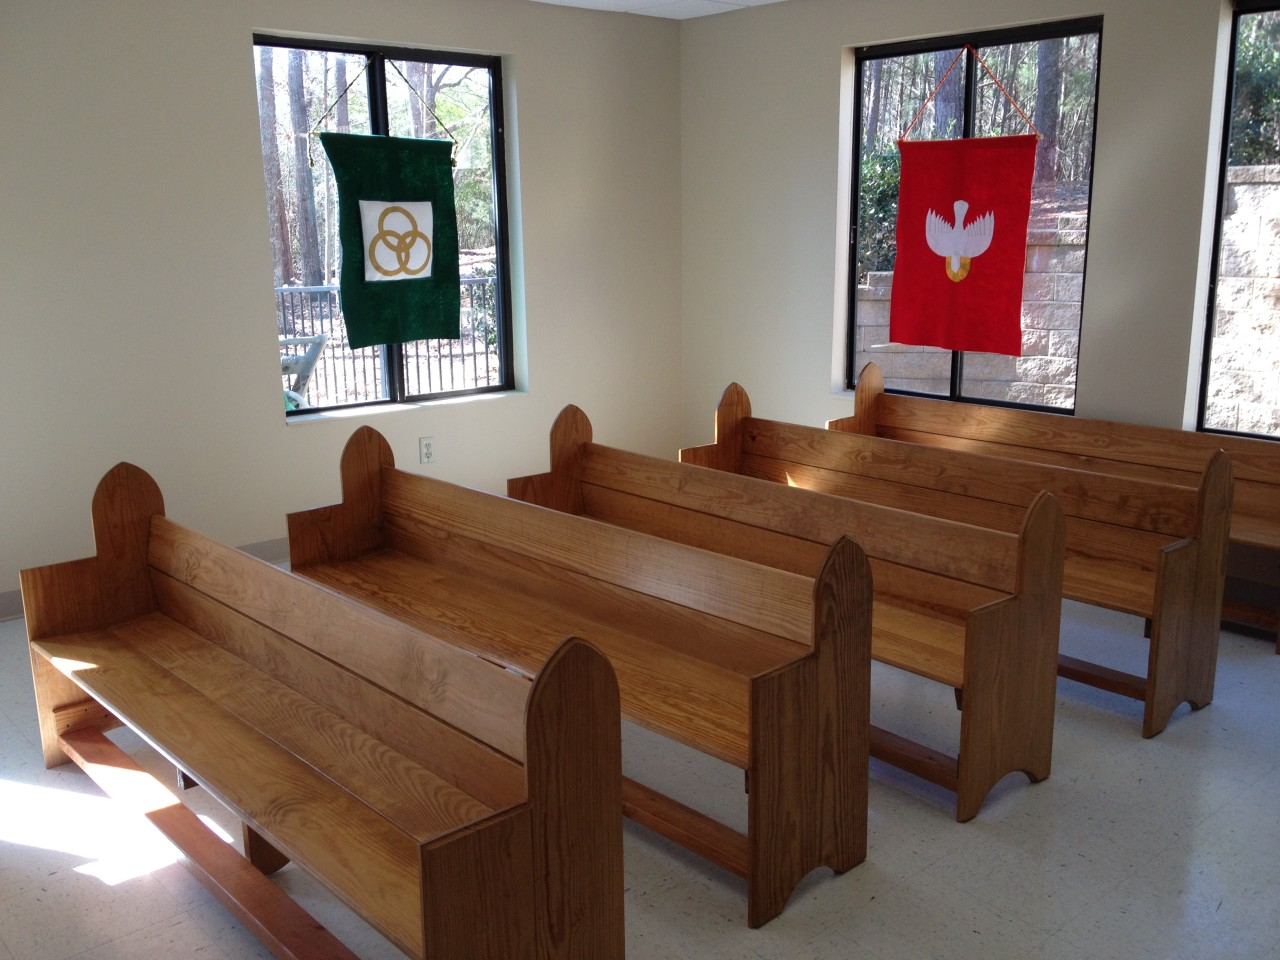 Children's Chapel